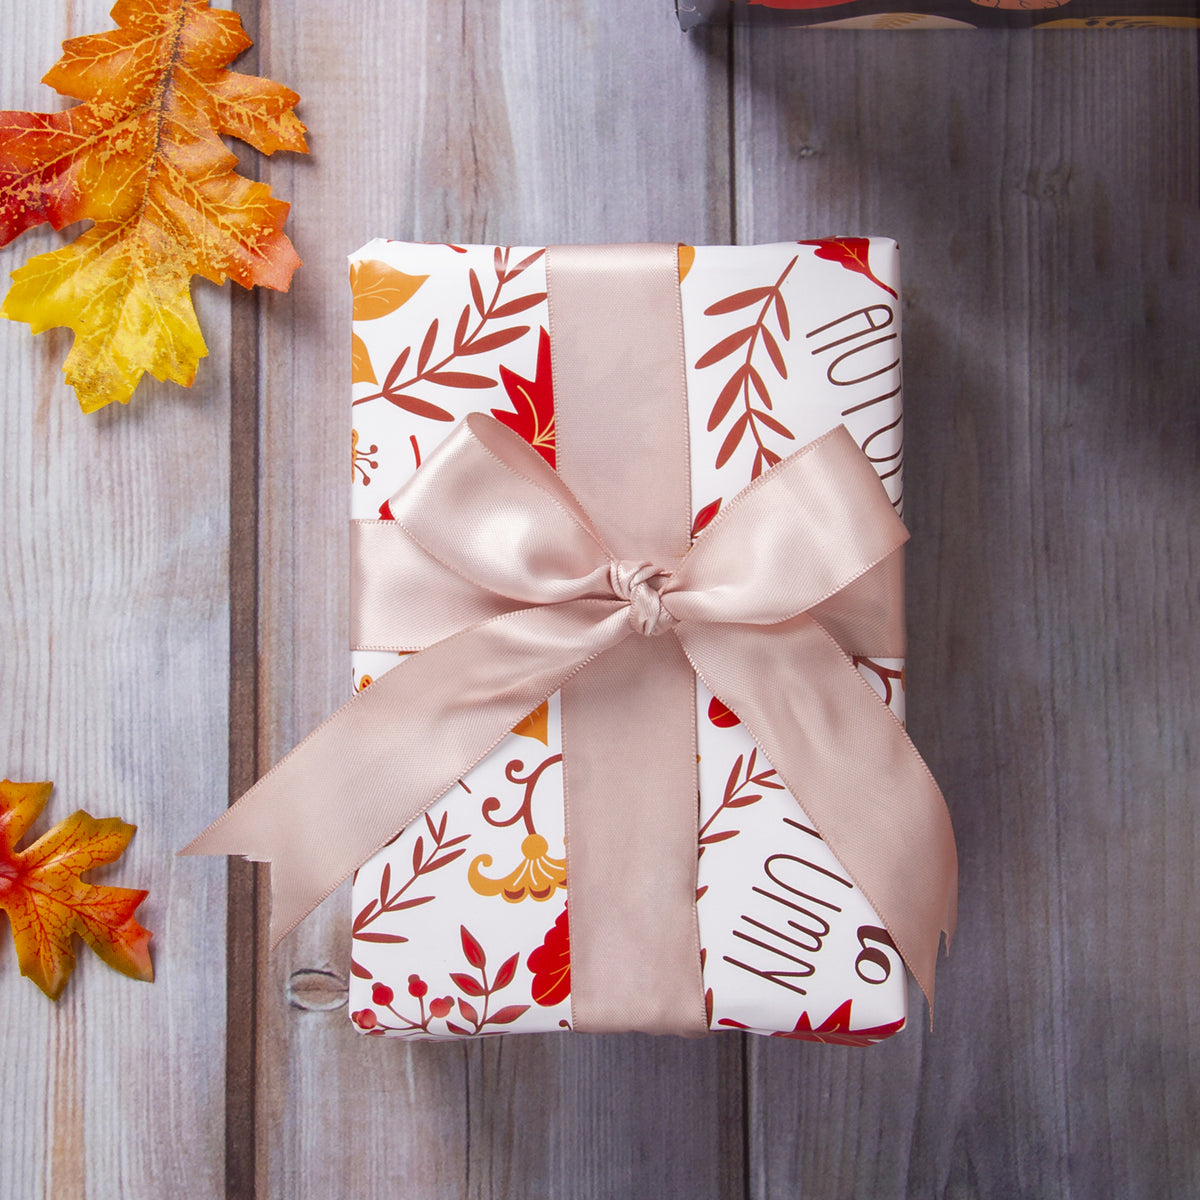 Wrapaholic- Maple-Leaf-and-Pumpkin Autumn-Design-Gift-Wrapping-Paper-Roll-4 Rolls-5